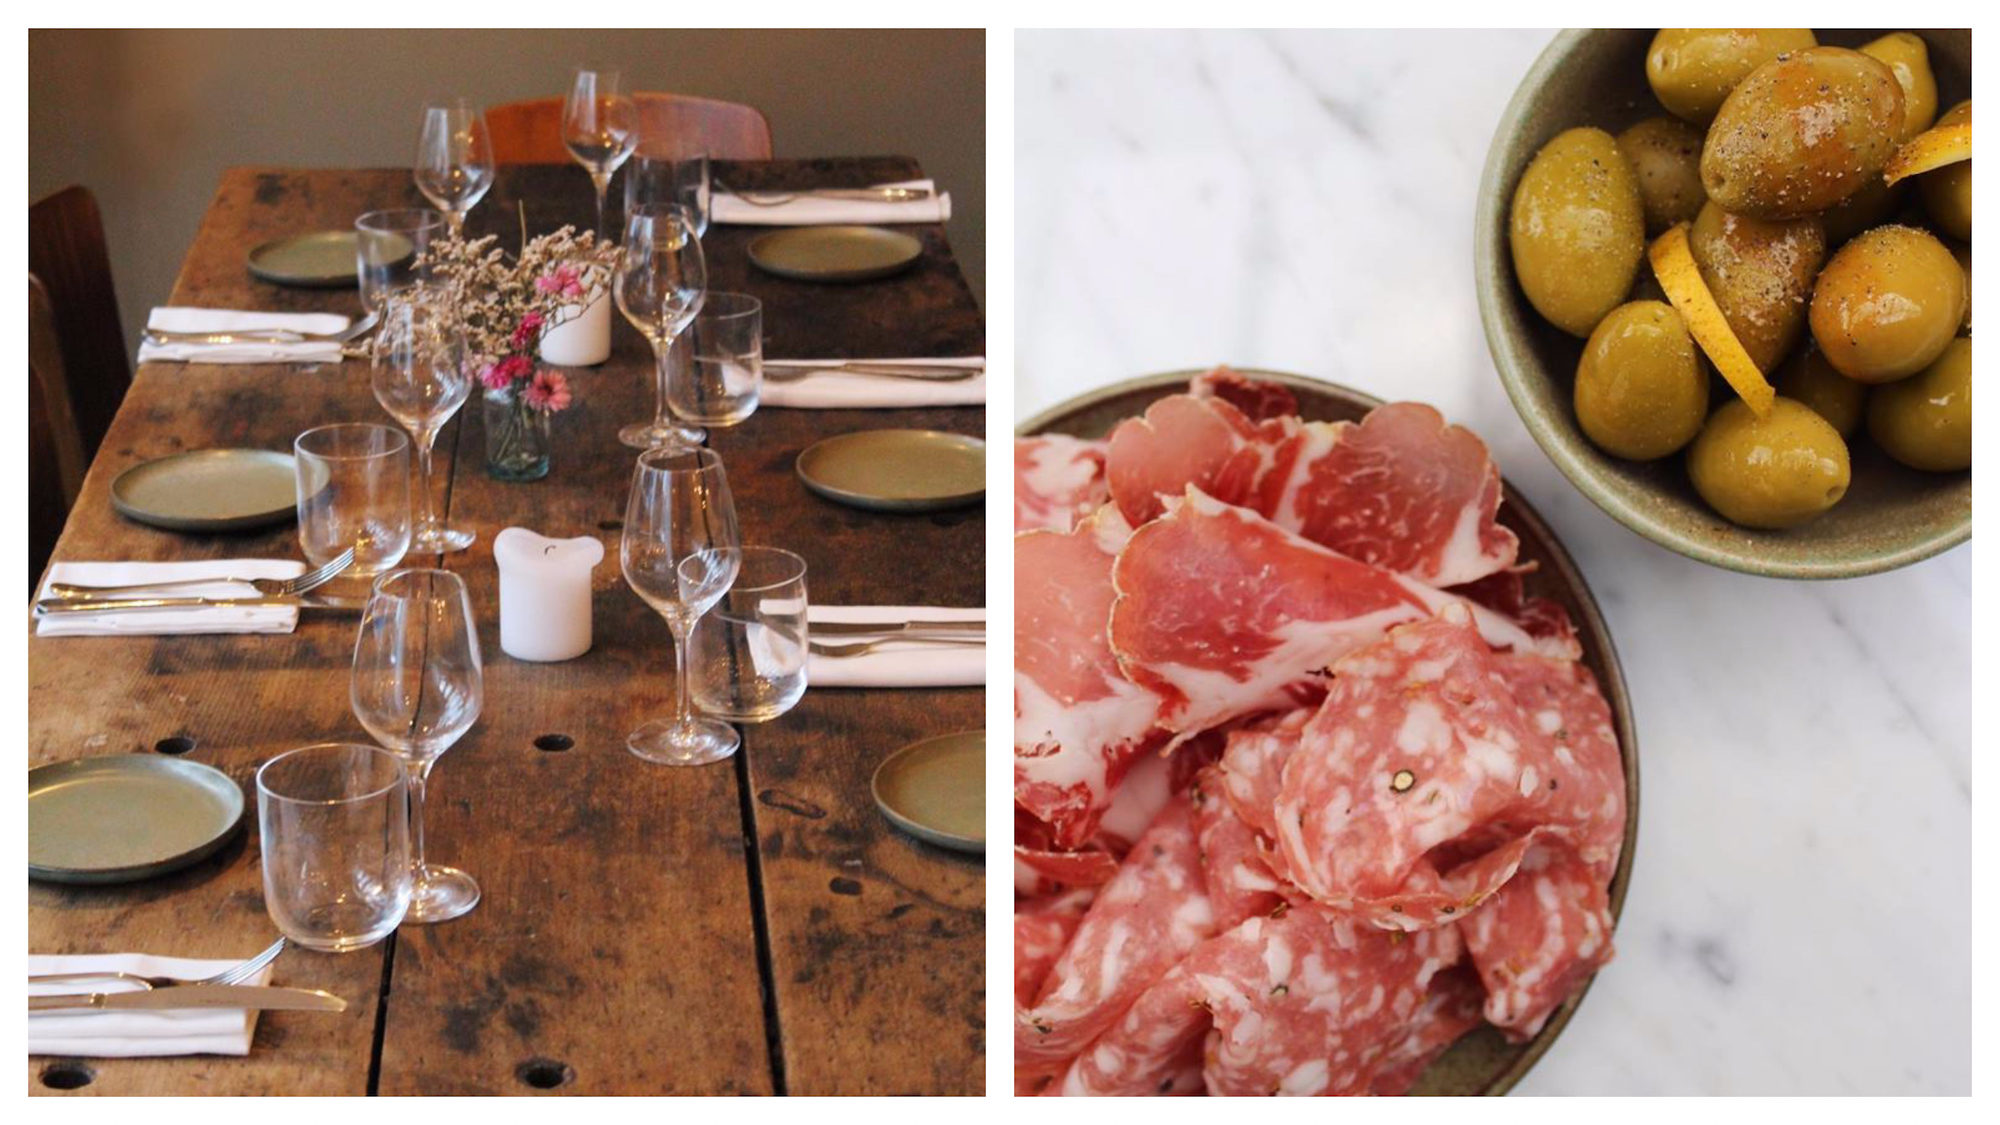 Our go-to restaurant in the Marais in Paris is Pacifico for its beautiful bohemian interiors (left) and delicious hams and olives, as well as the rest of the delights on the menu (right).